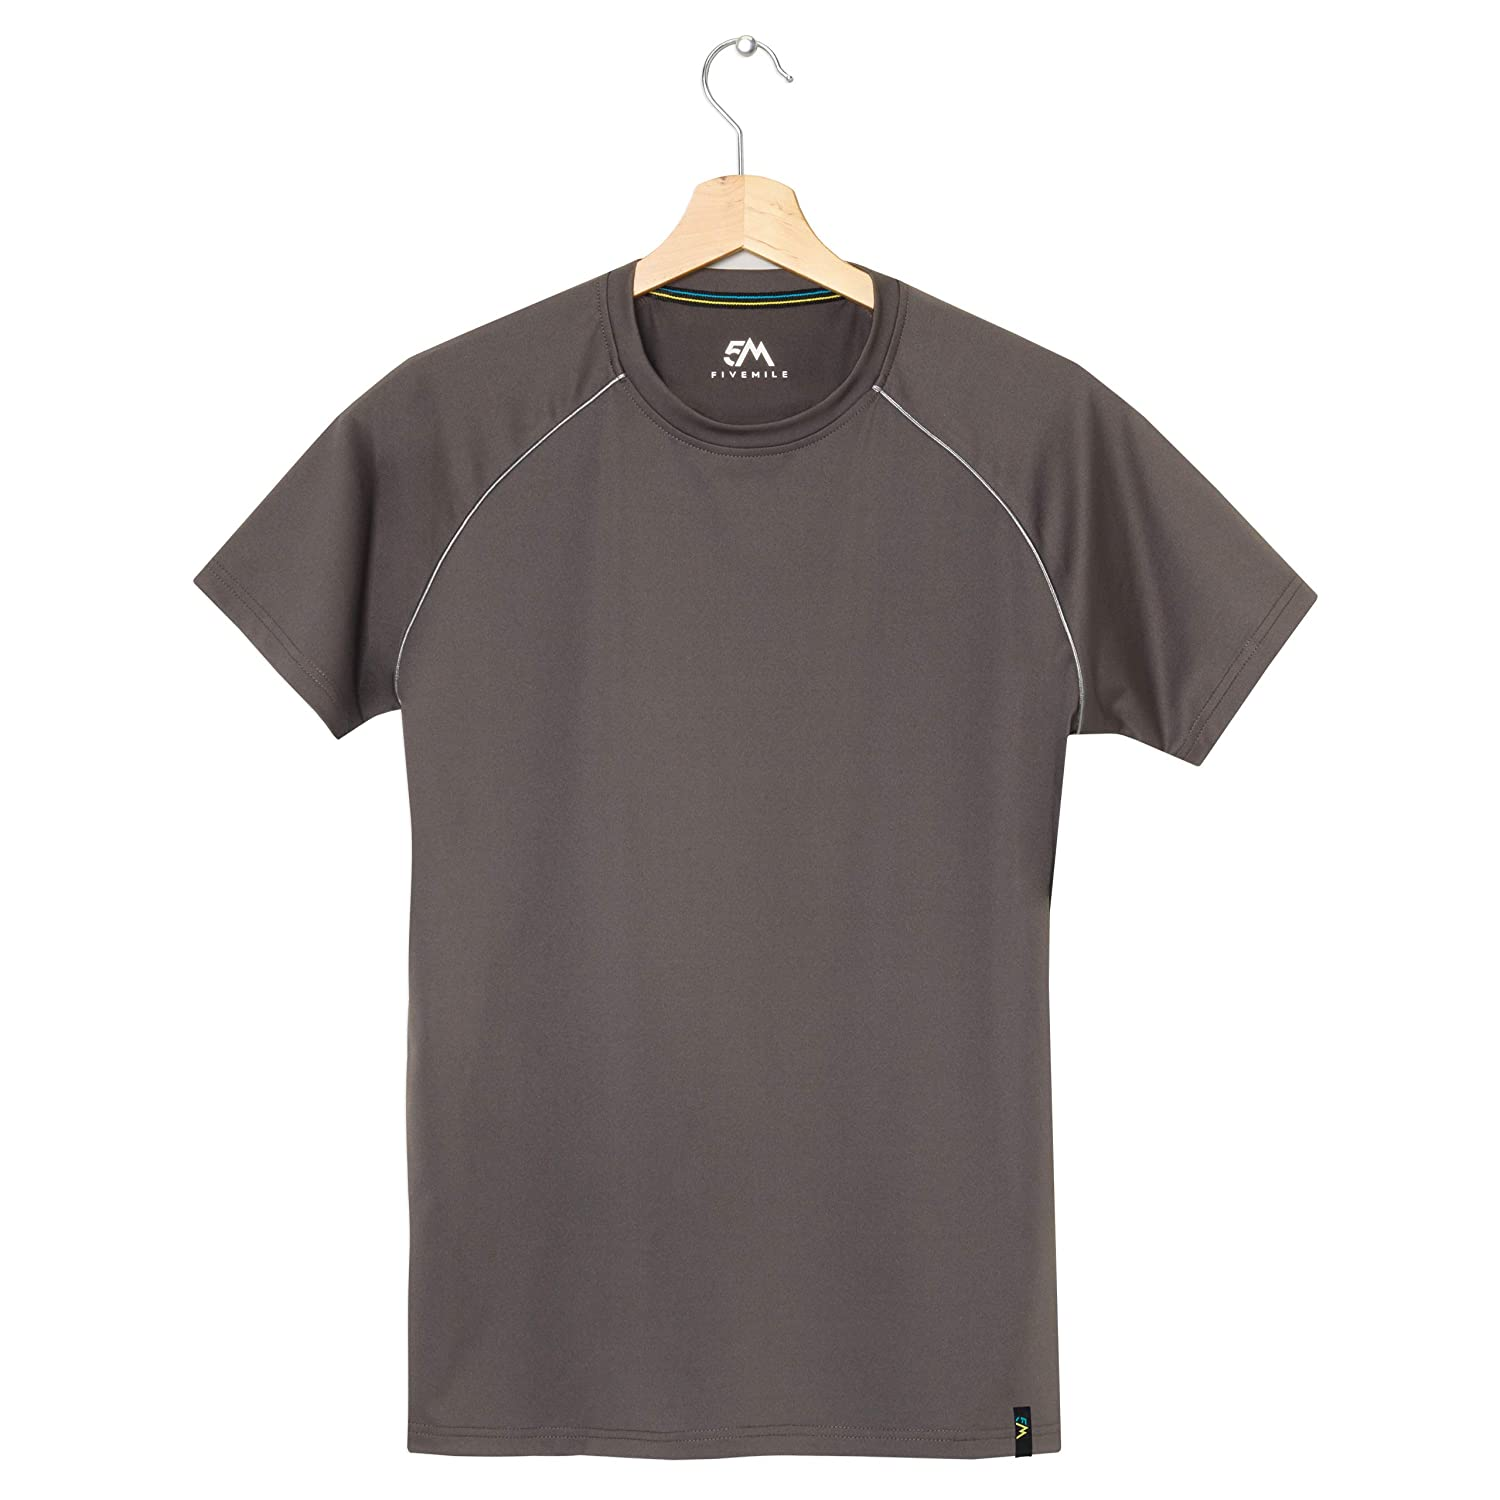 Five Mile Mens Brecon Wicking Sports T-Shirt